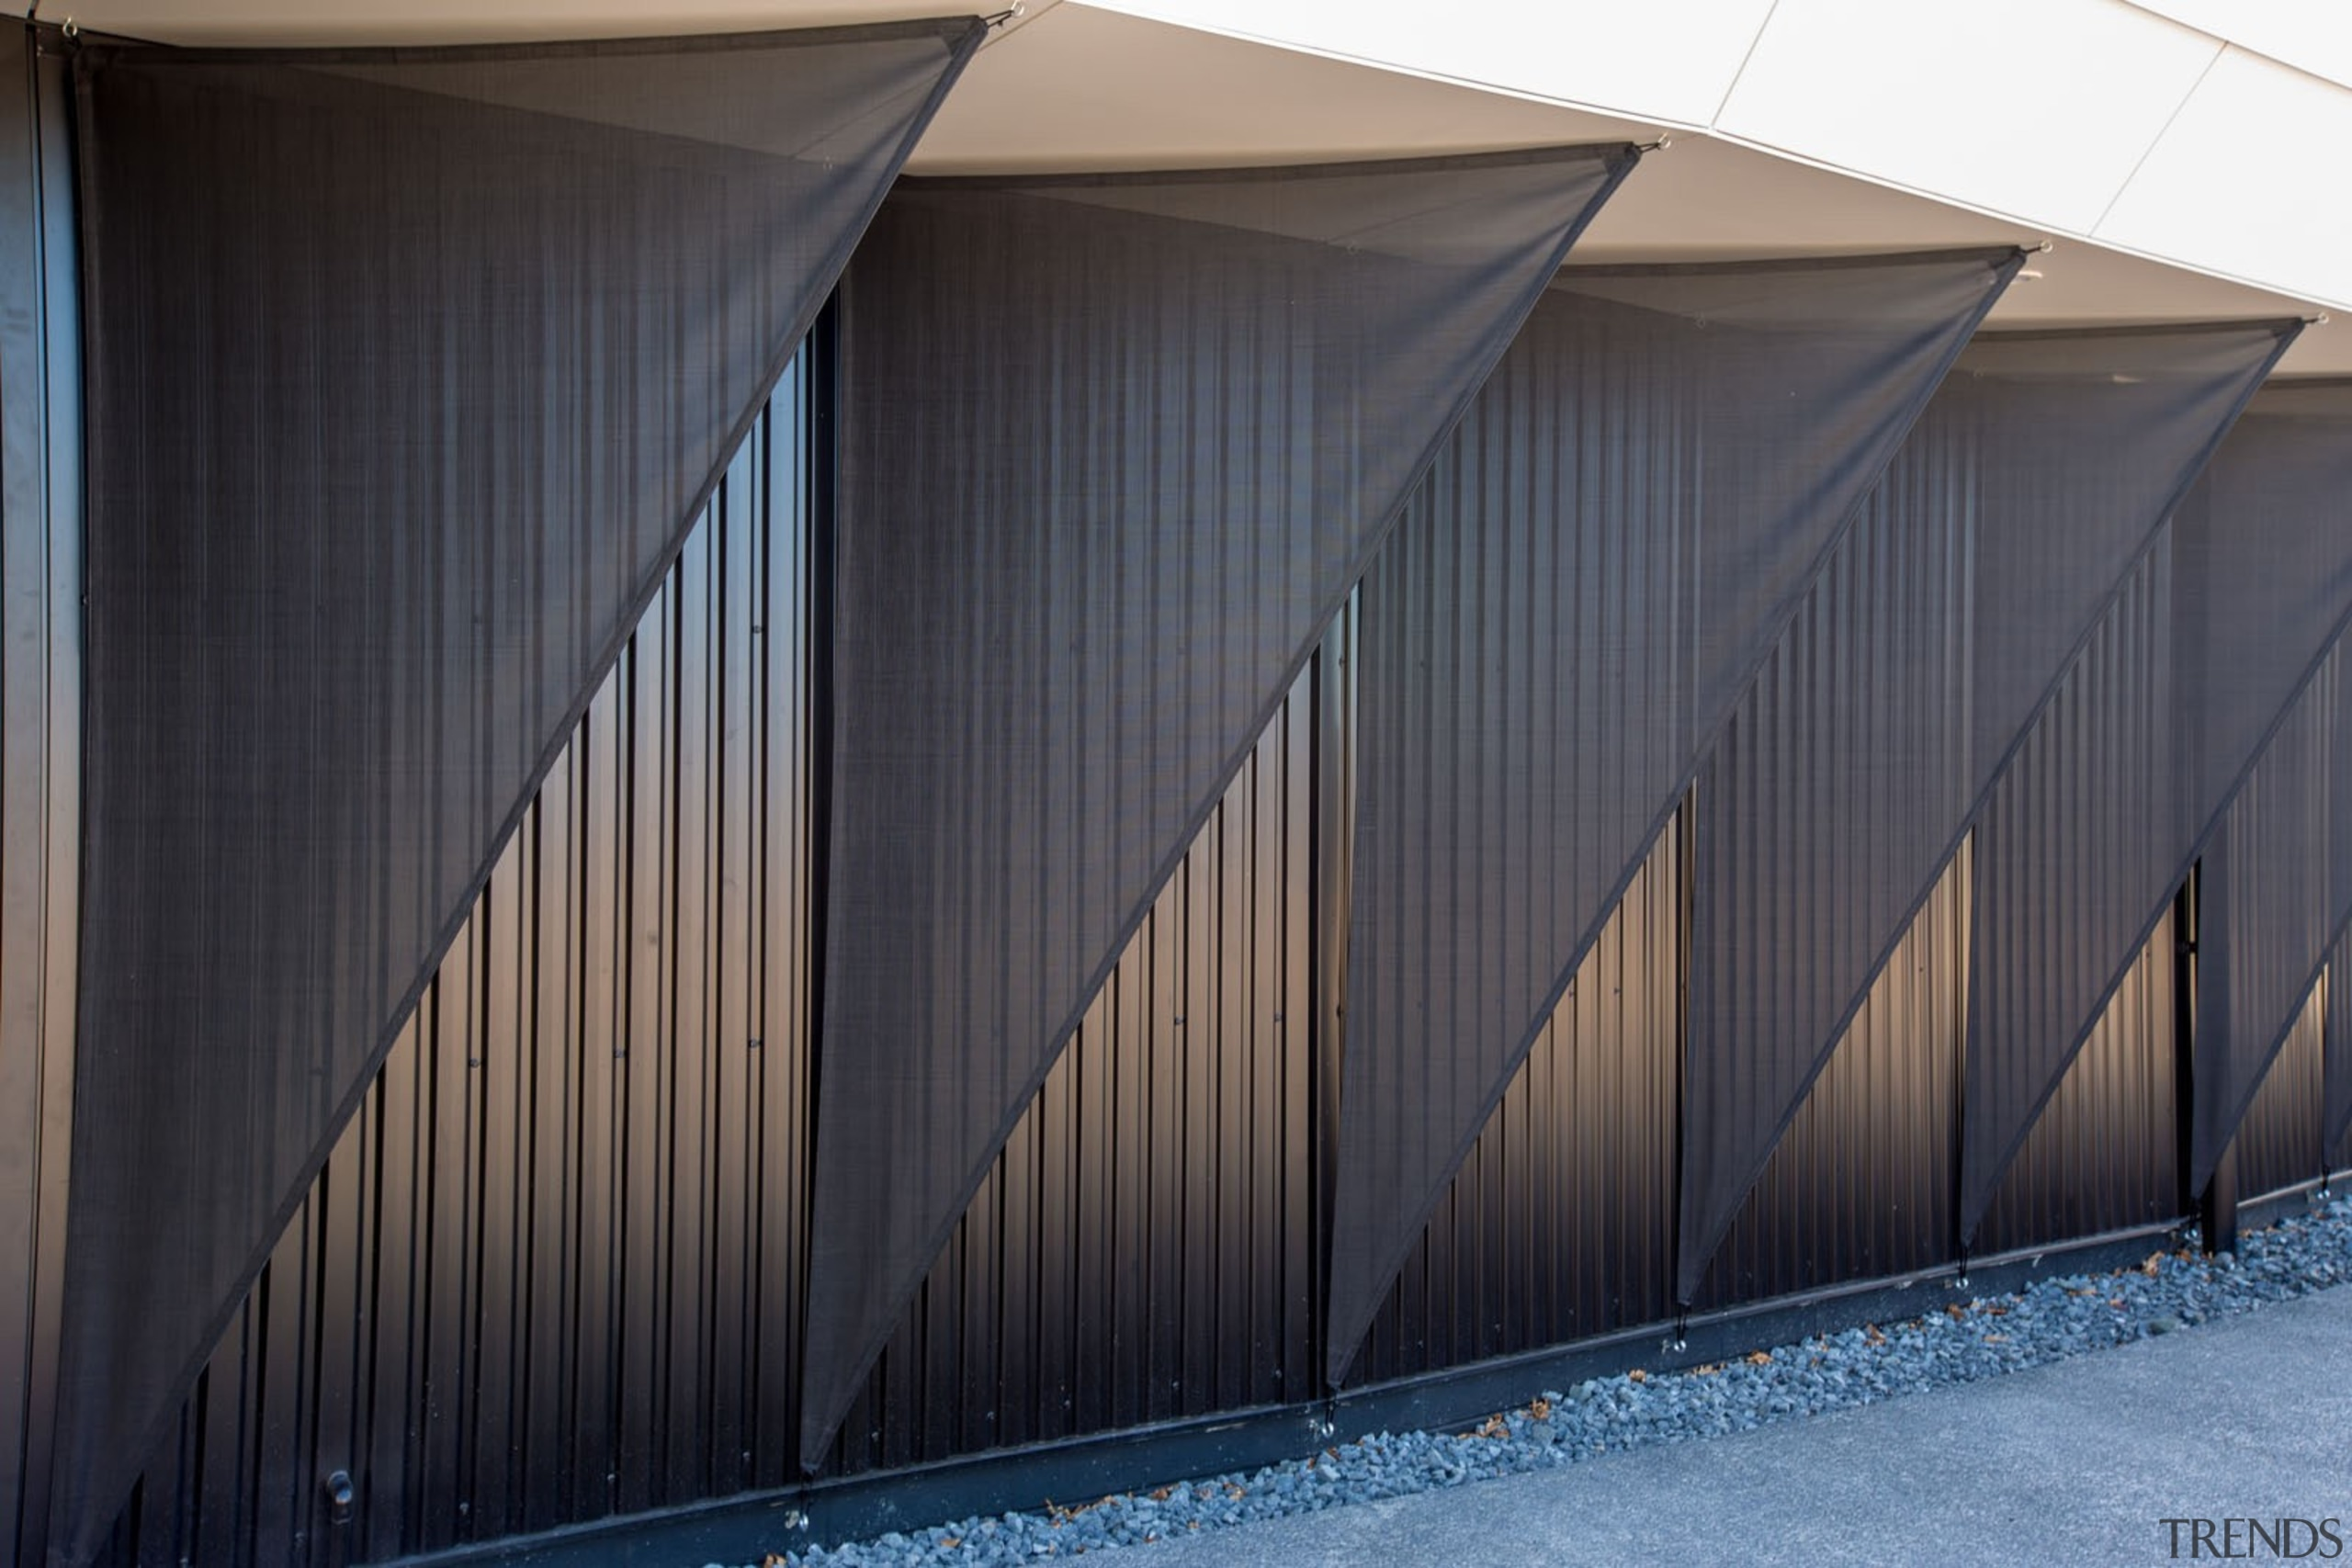 Chrysalis-119 - Chrysalis 119 - architecture | building architecture, building, daylighting, facade, house, line, roof, shed, siding, sky, structure, wood, black, gray